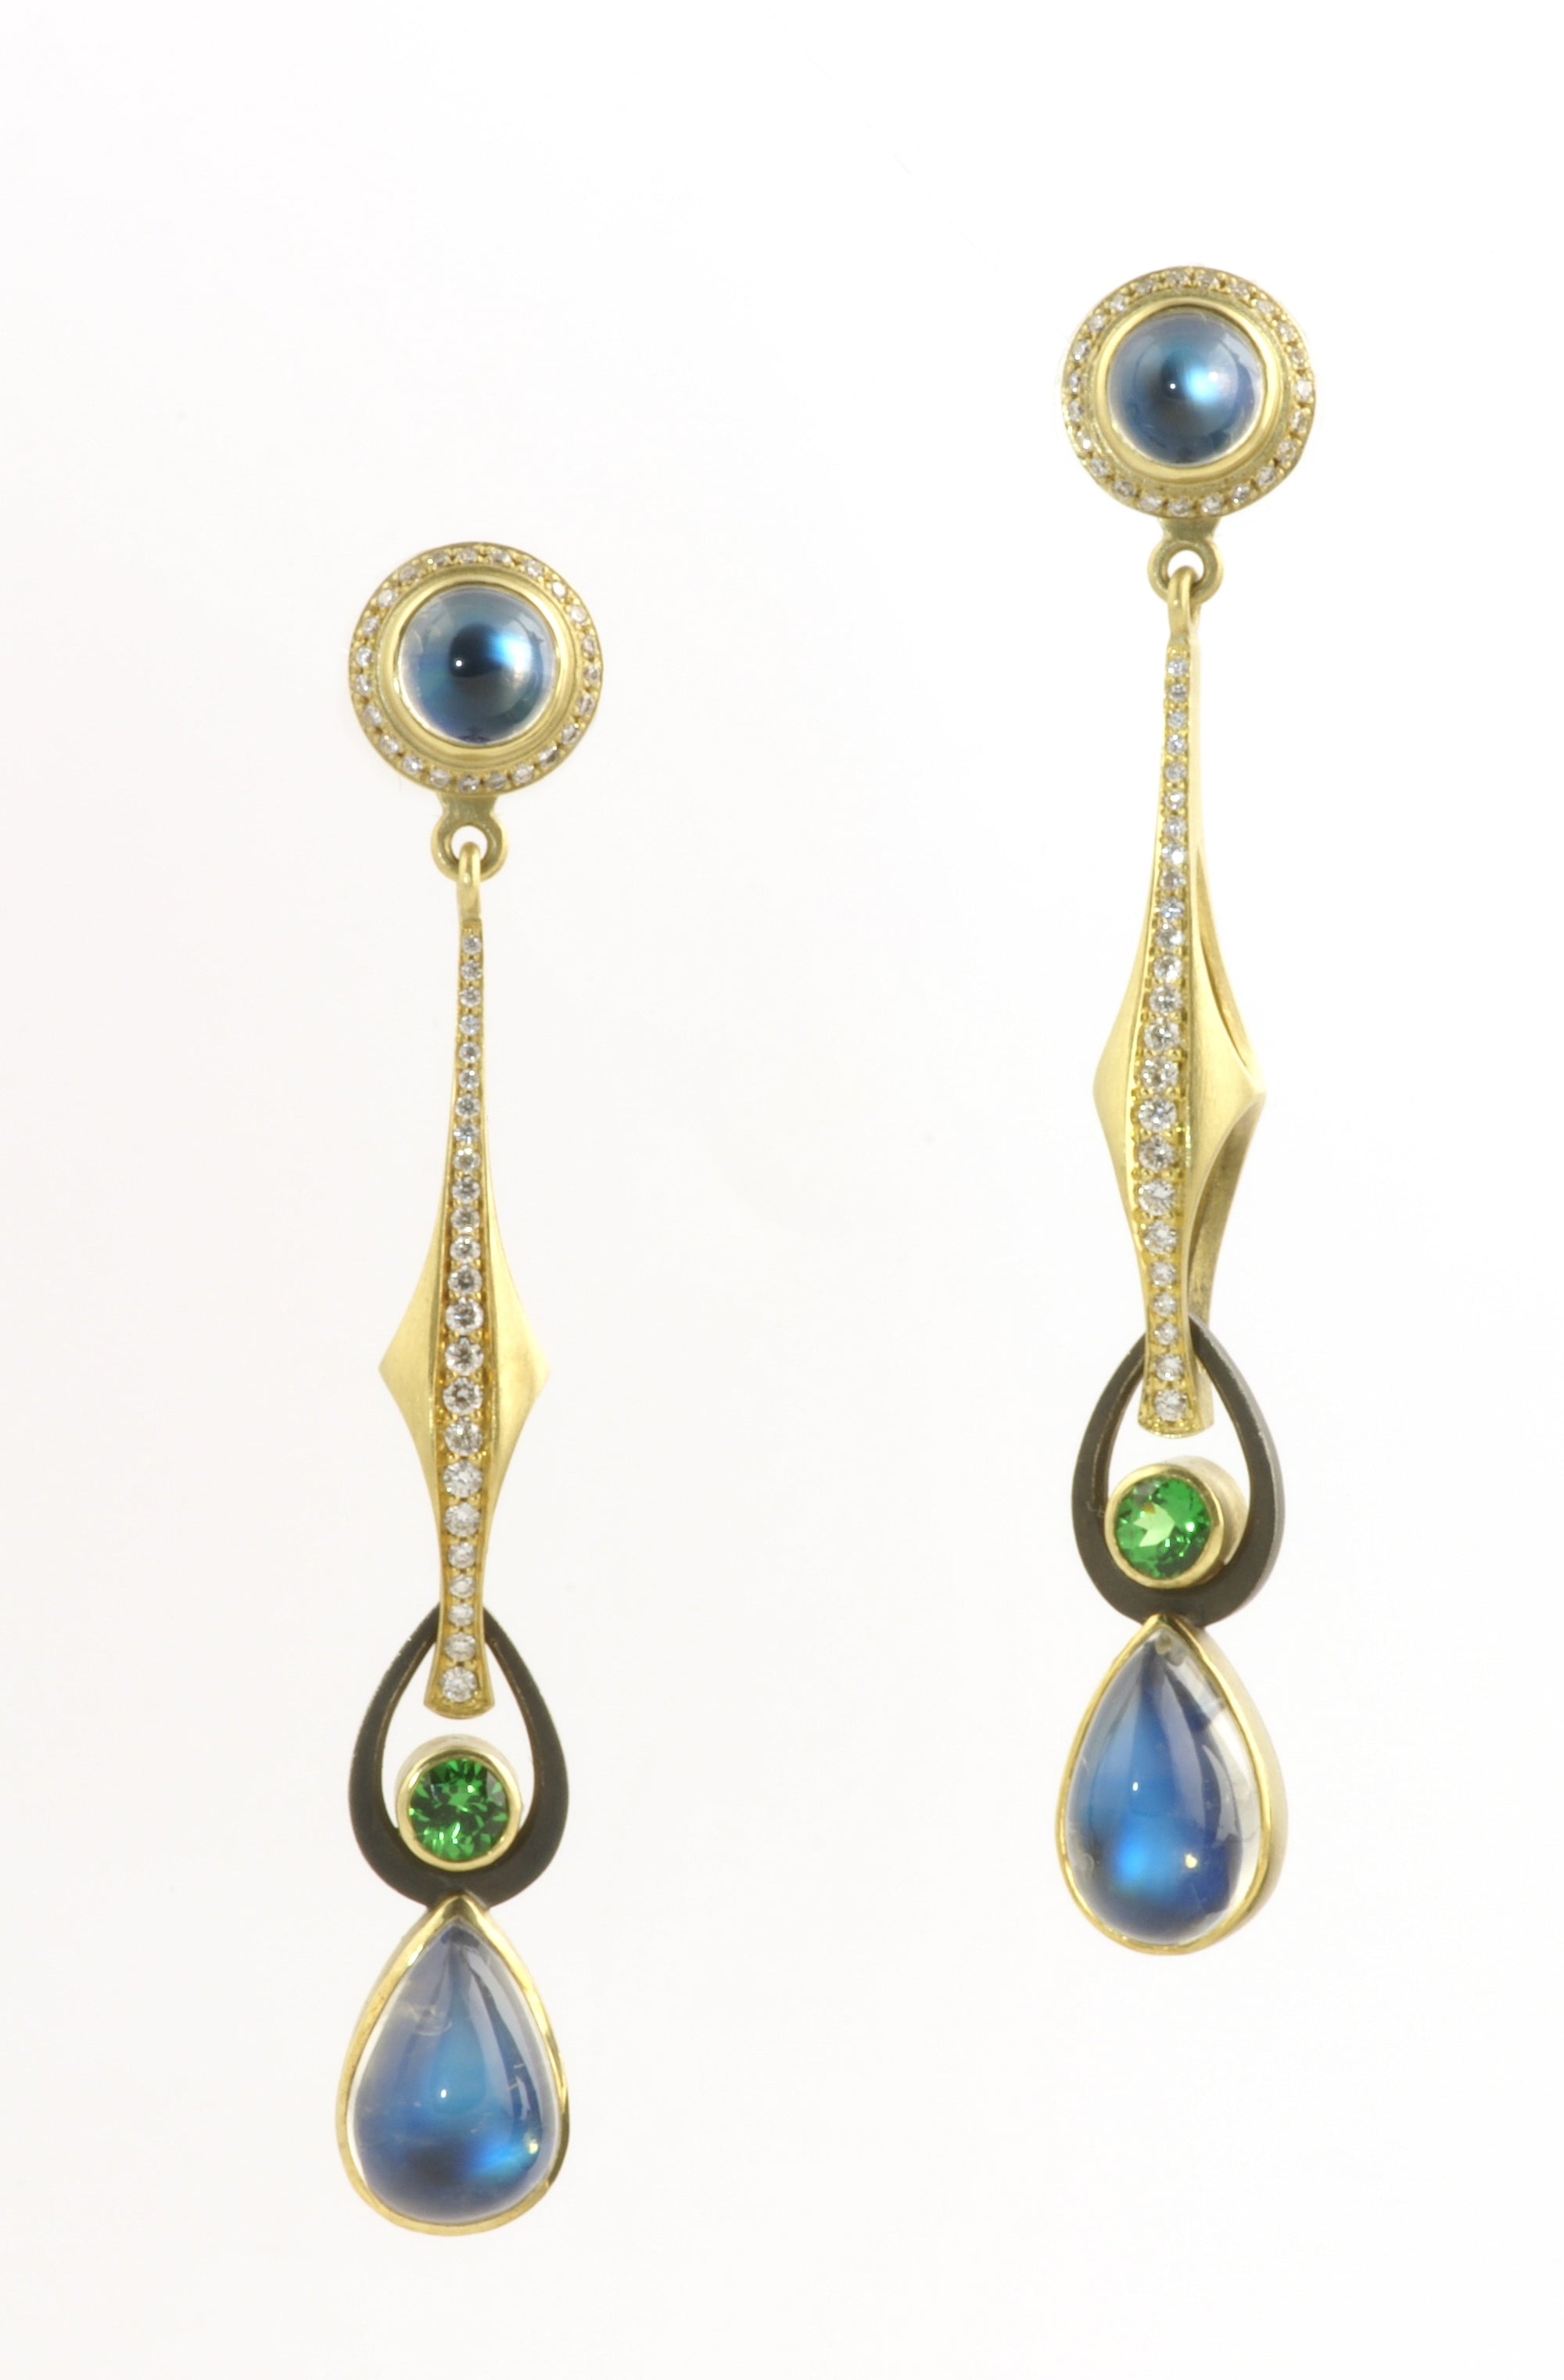 Moonstone earring stud and drops